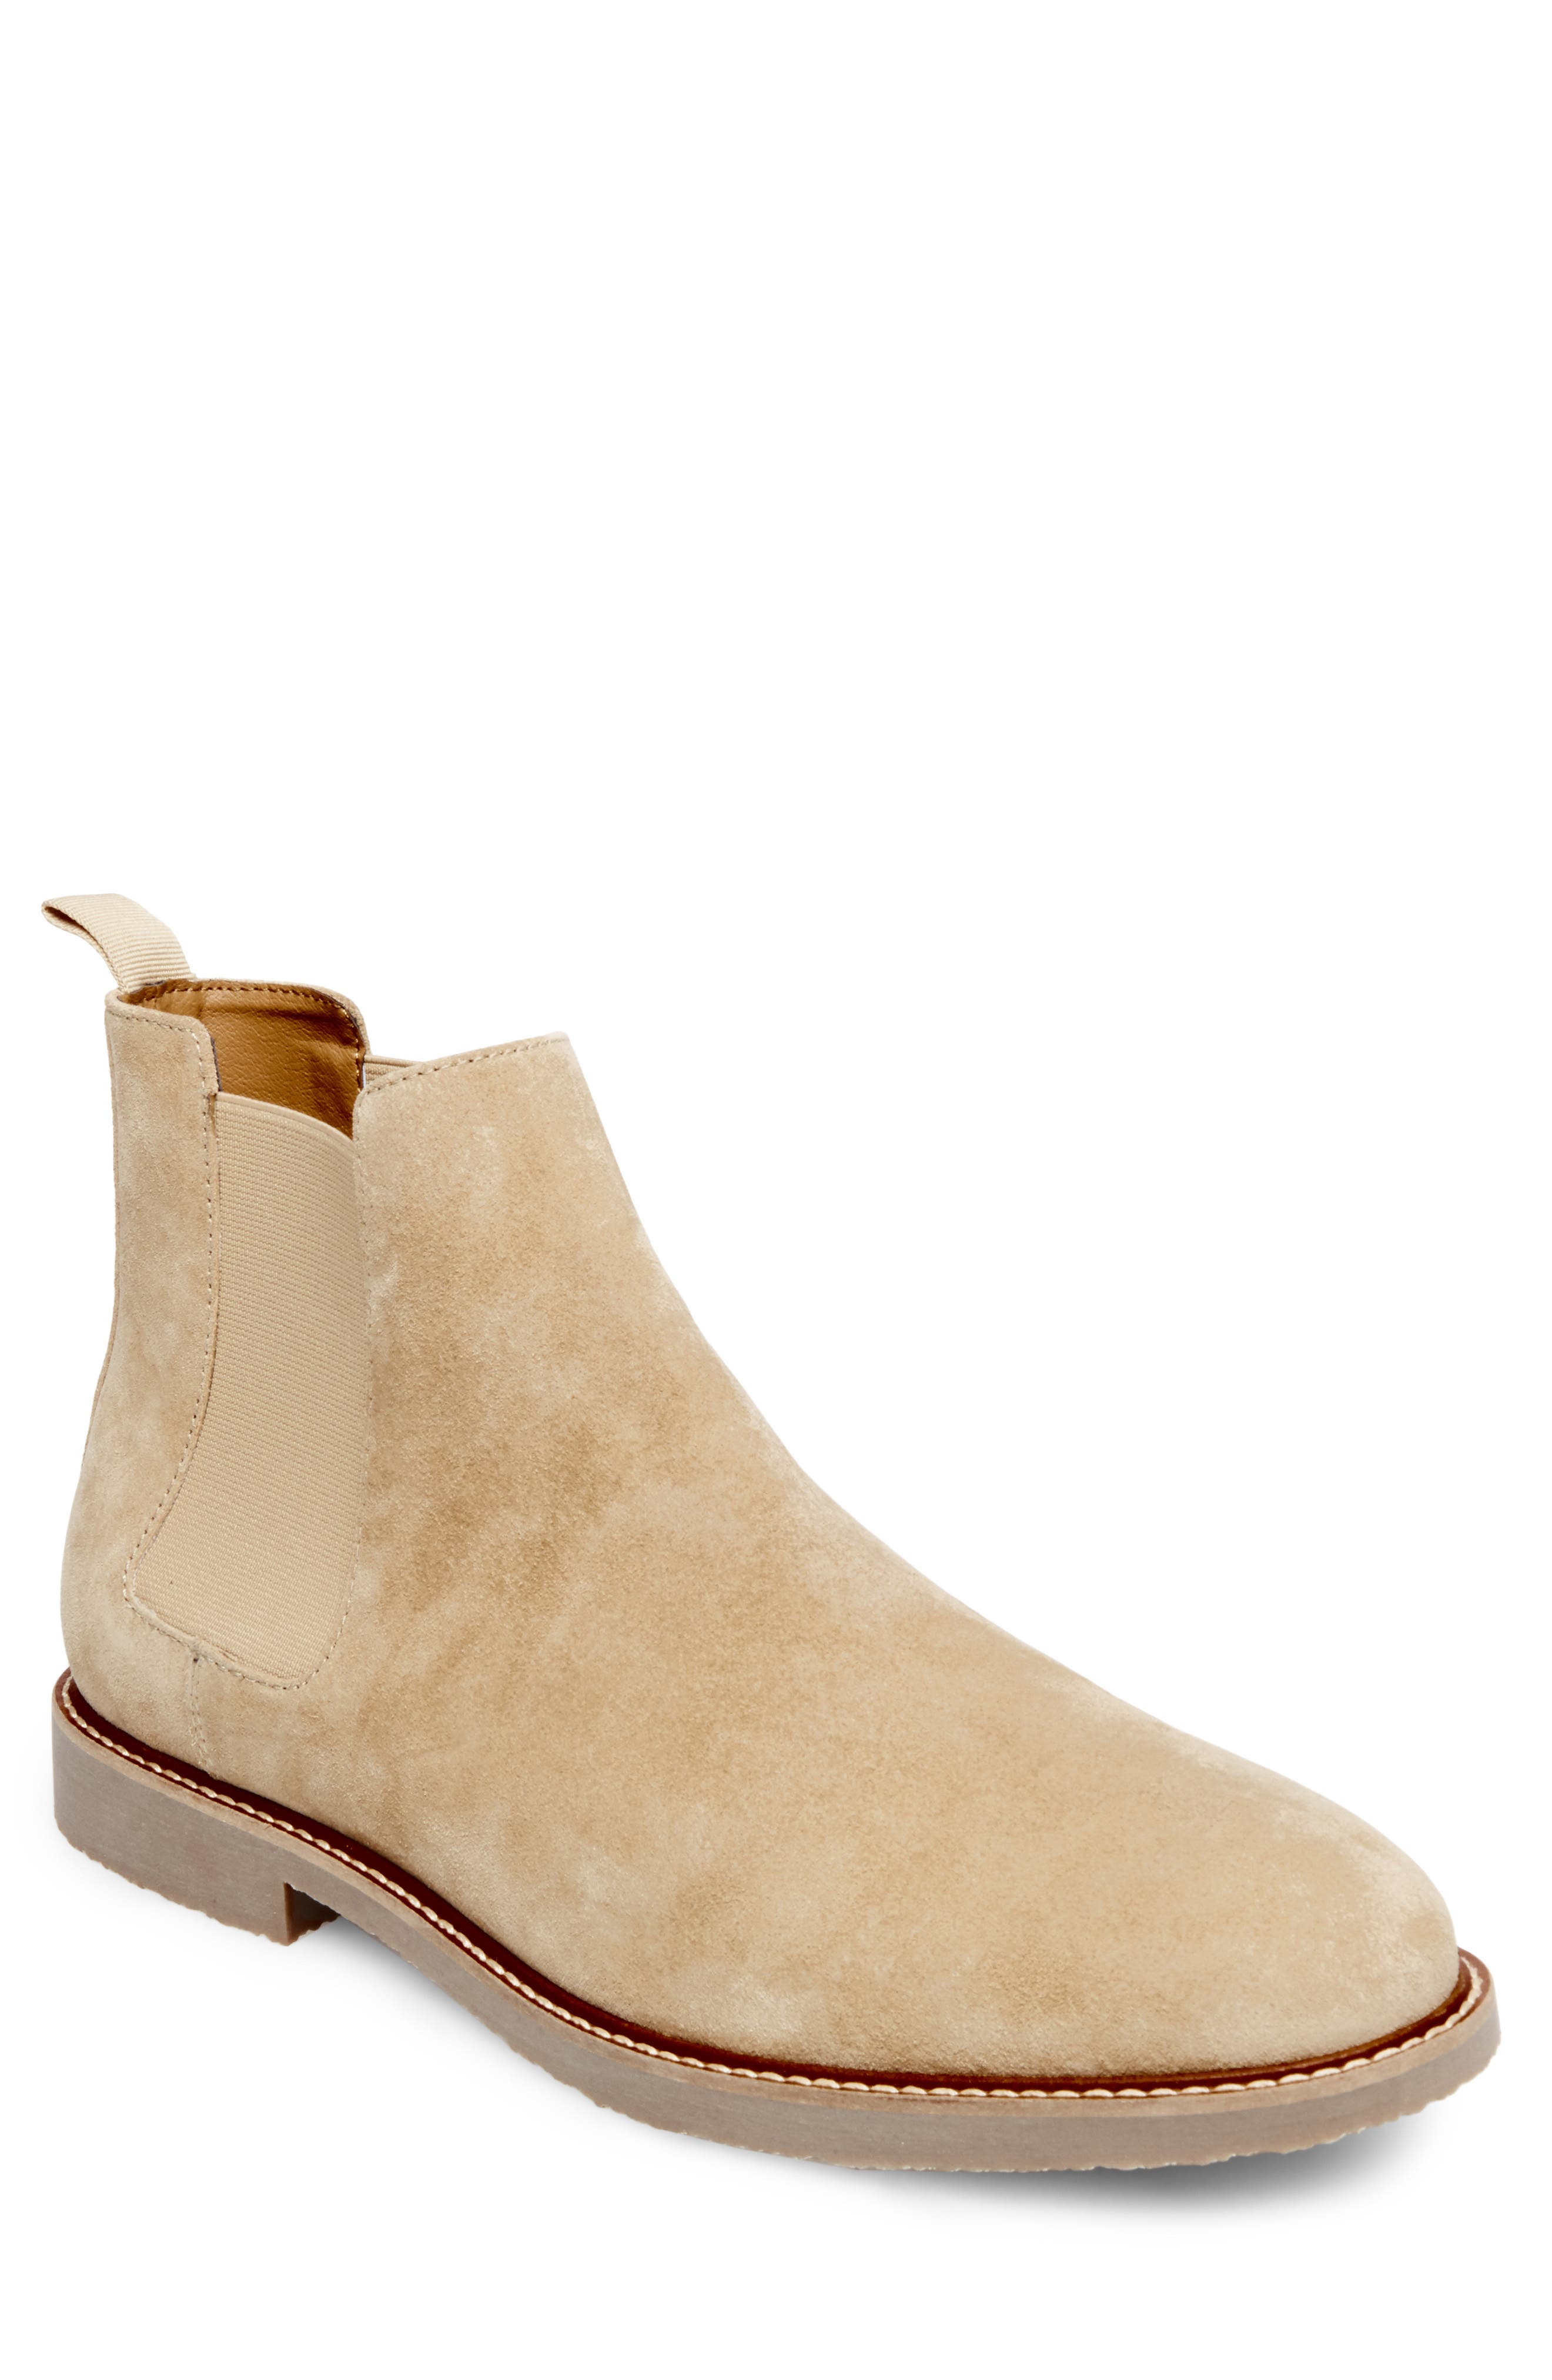 Steve Madden Highline Chelsea Boot, Brown